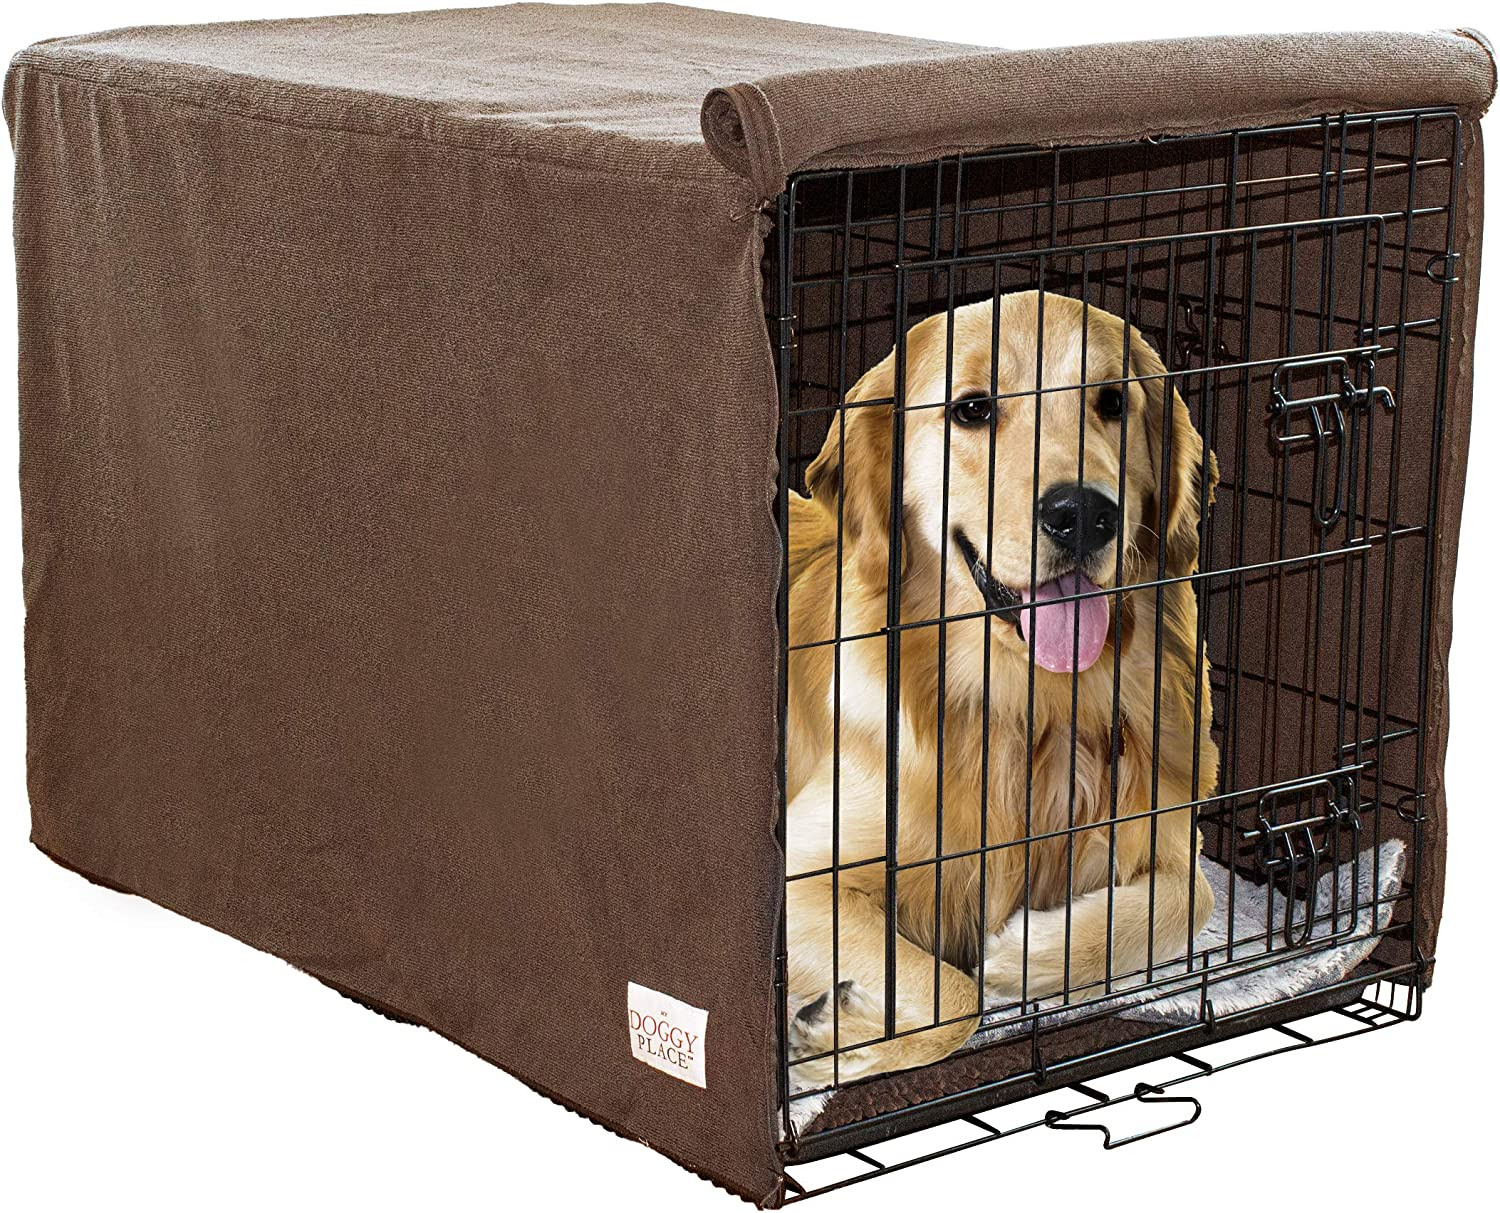 My Doggy Place Ultra Absorbent Microfiber Chenille Dog Crate Padded Covers for Pets, Premium, Durable, Washable Kennel Protector Privacy Shield (Brown and Charcoal) (Small, Medium, Large)